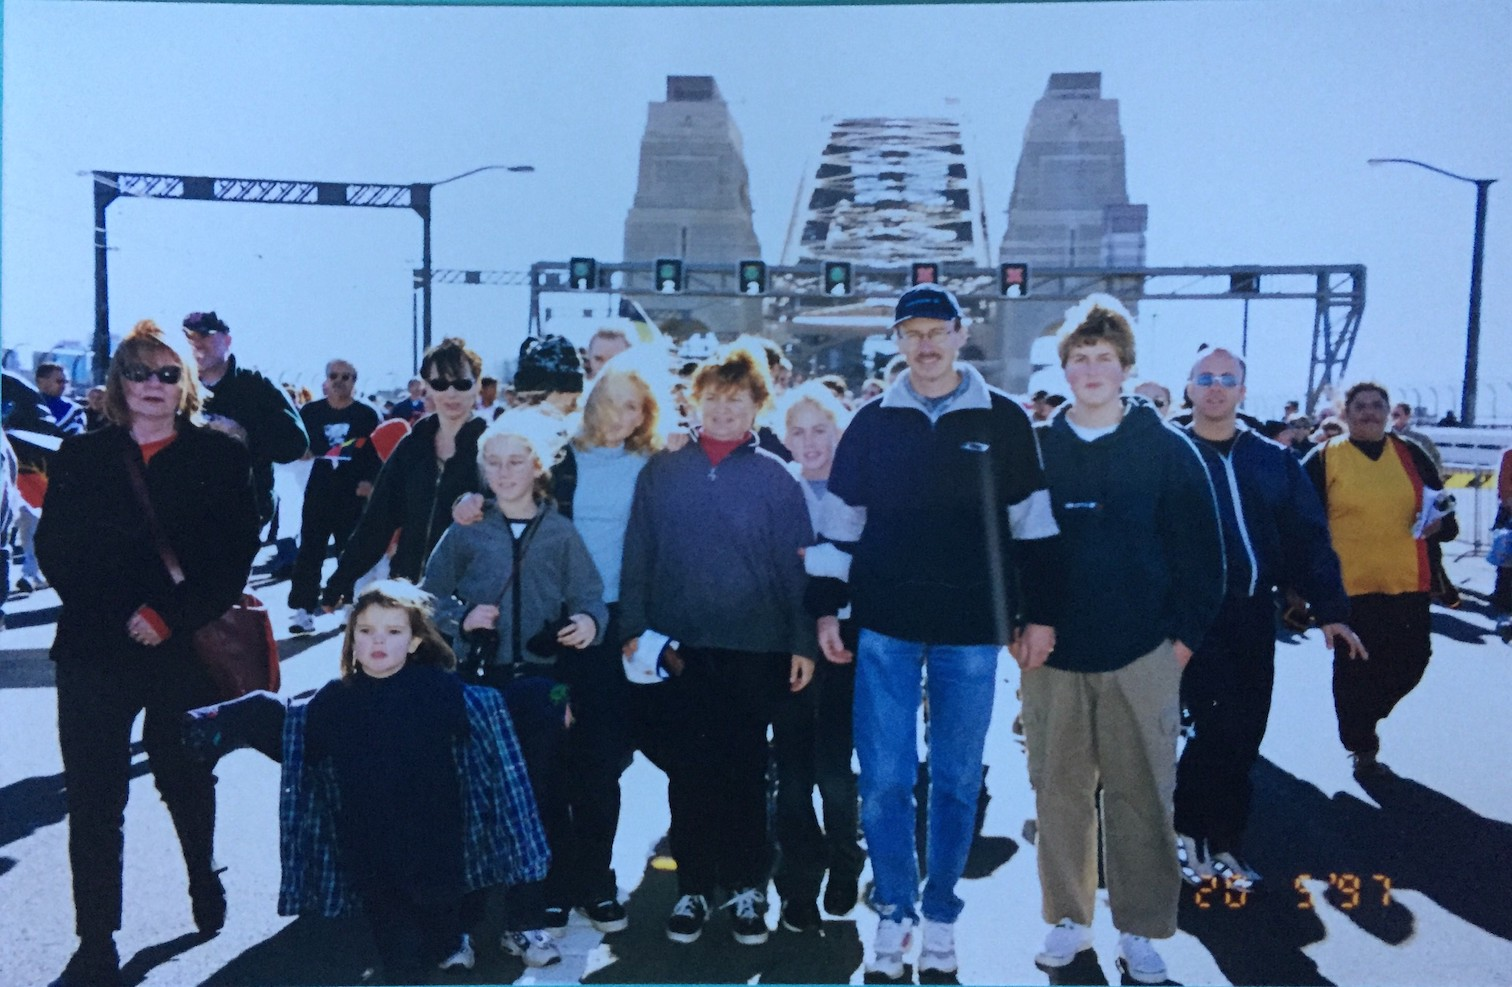 AReconciliation_Walk_2000_Dalton_and_Lock_families_2.jpg